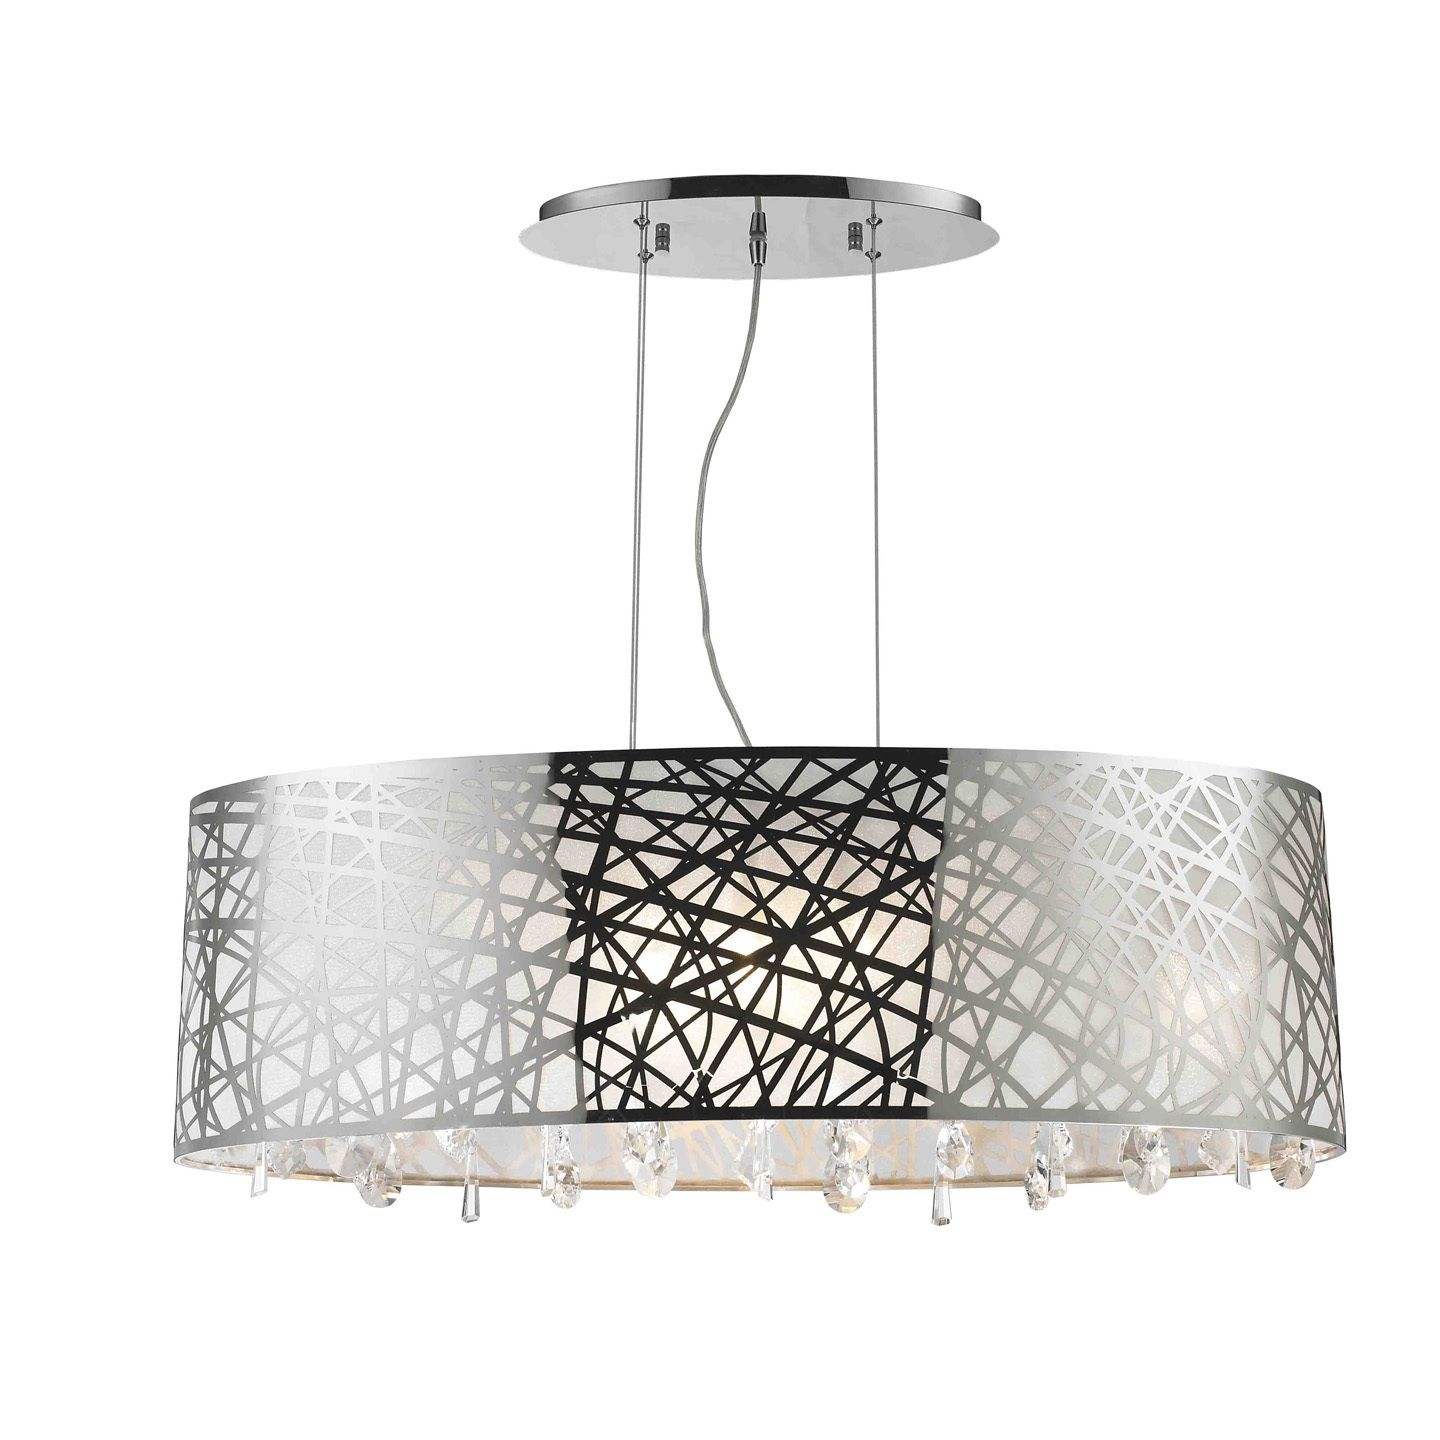 High Gloss Modern 8 Light Halogen Chrome Finish Oval Drum Shade With Regard To Modern Chrome Chandeliers (Image 10 of 15)